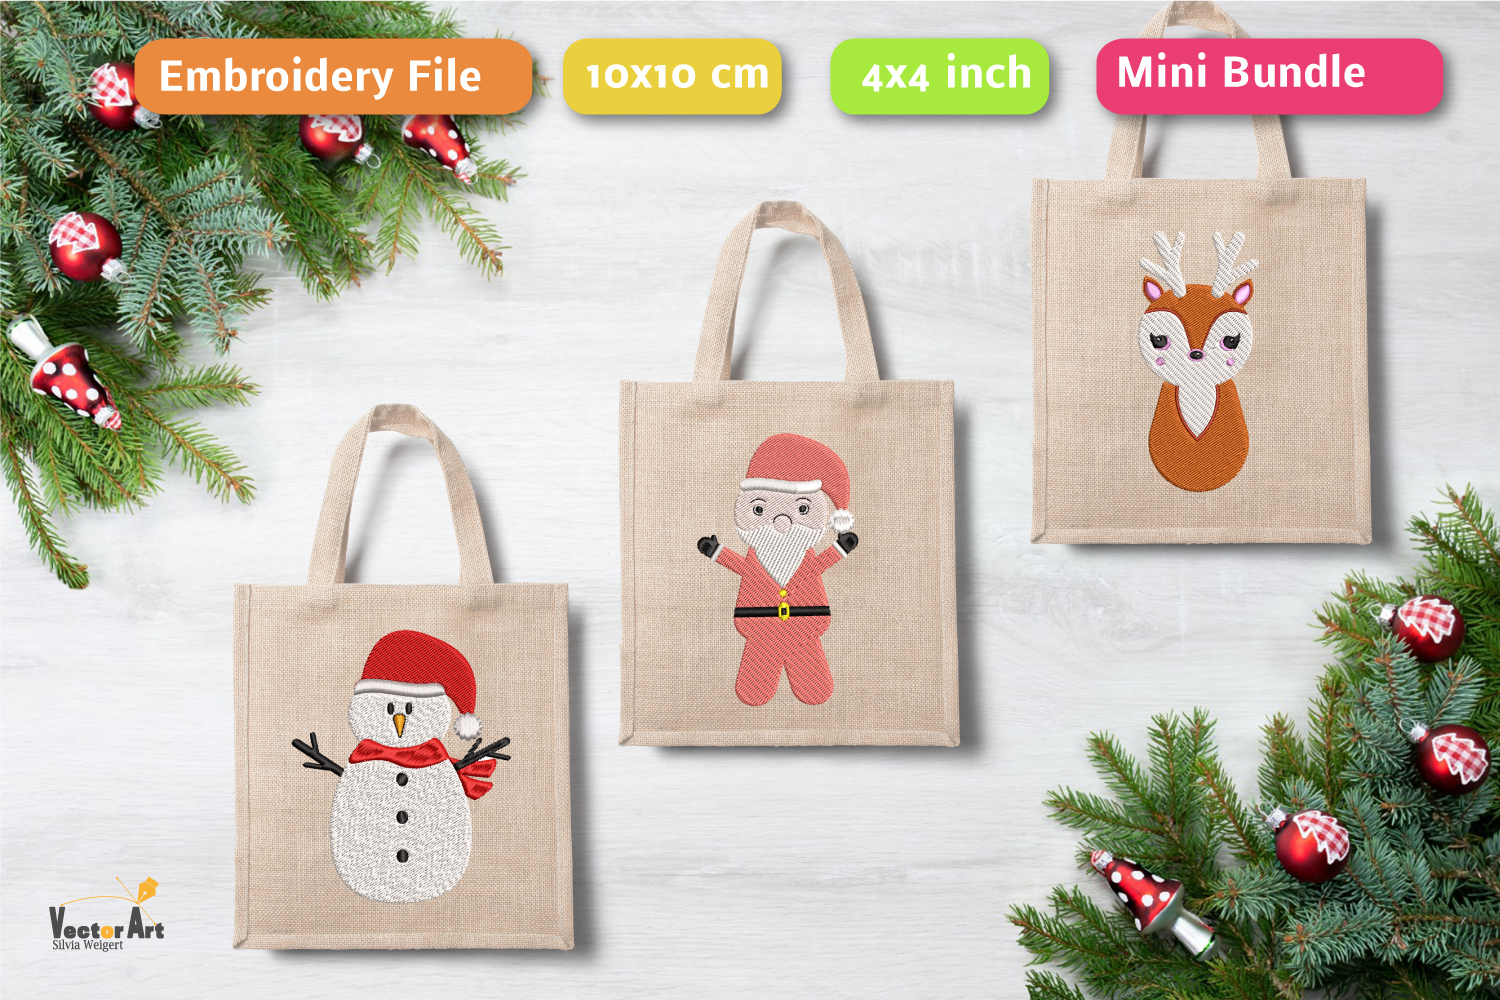 Christmas Mini Bundle - 3 Embroidery Files - 4x4 inch example image 1